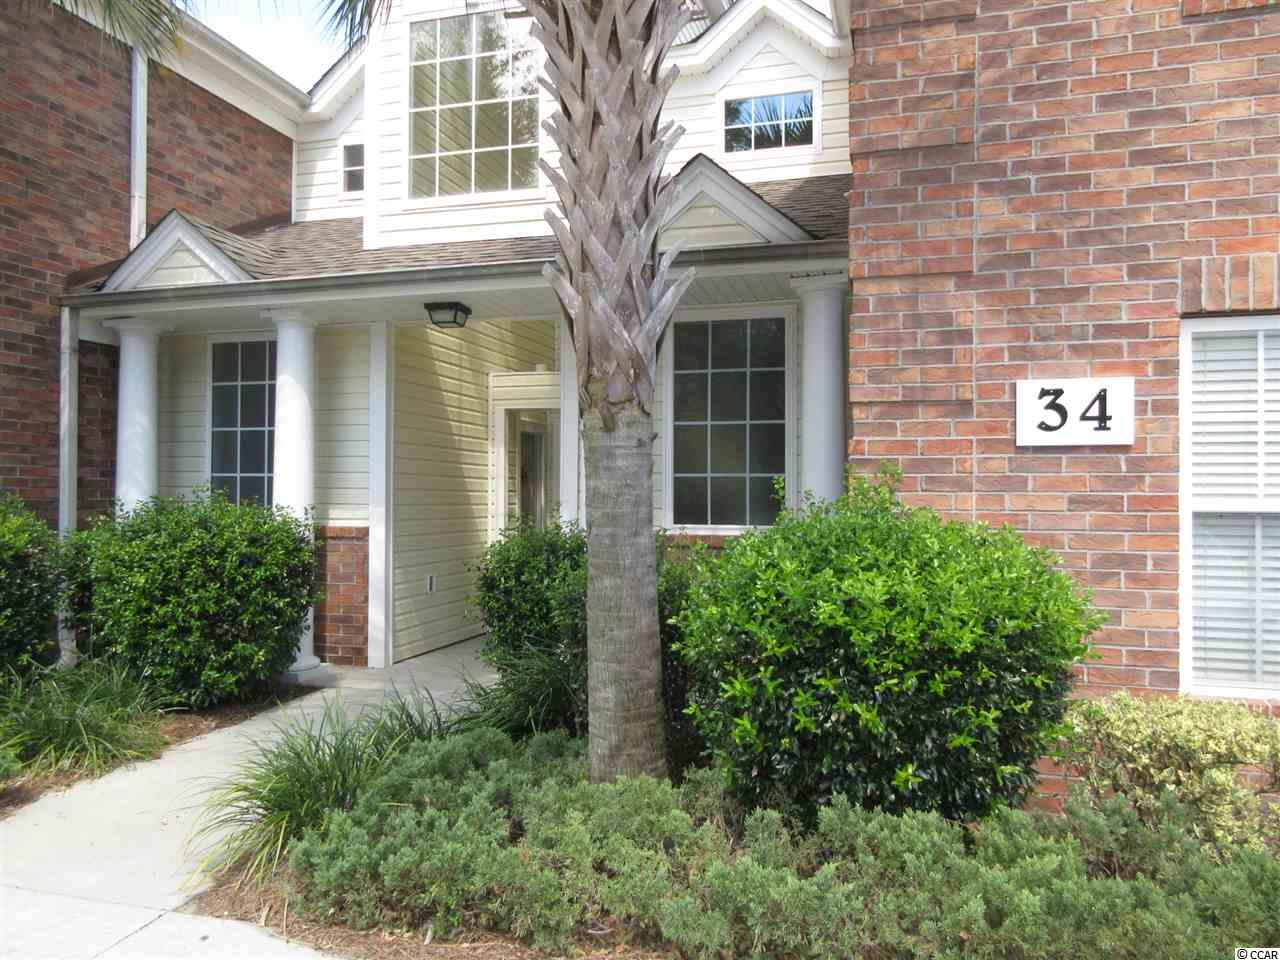 STERLING POINTE - MURRELLS INLET condo for sale in Murrells Inlet, SC